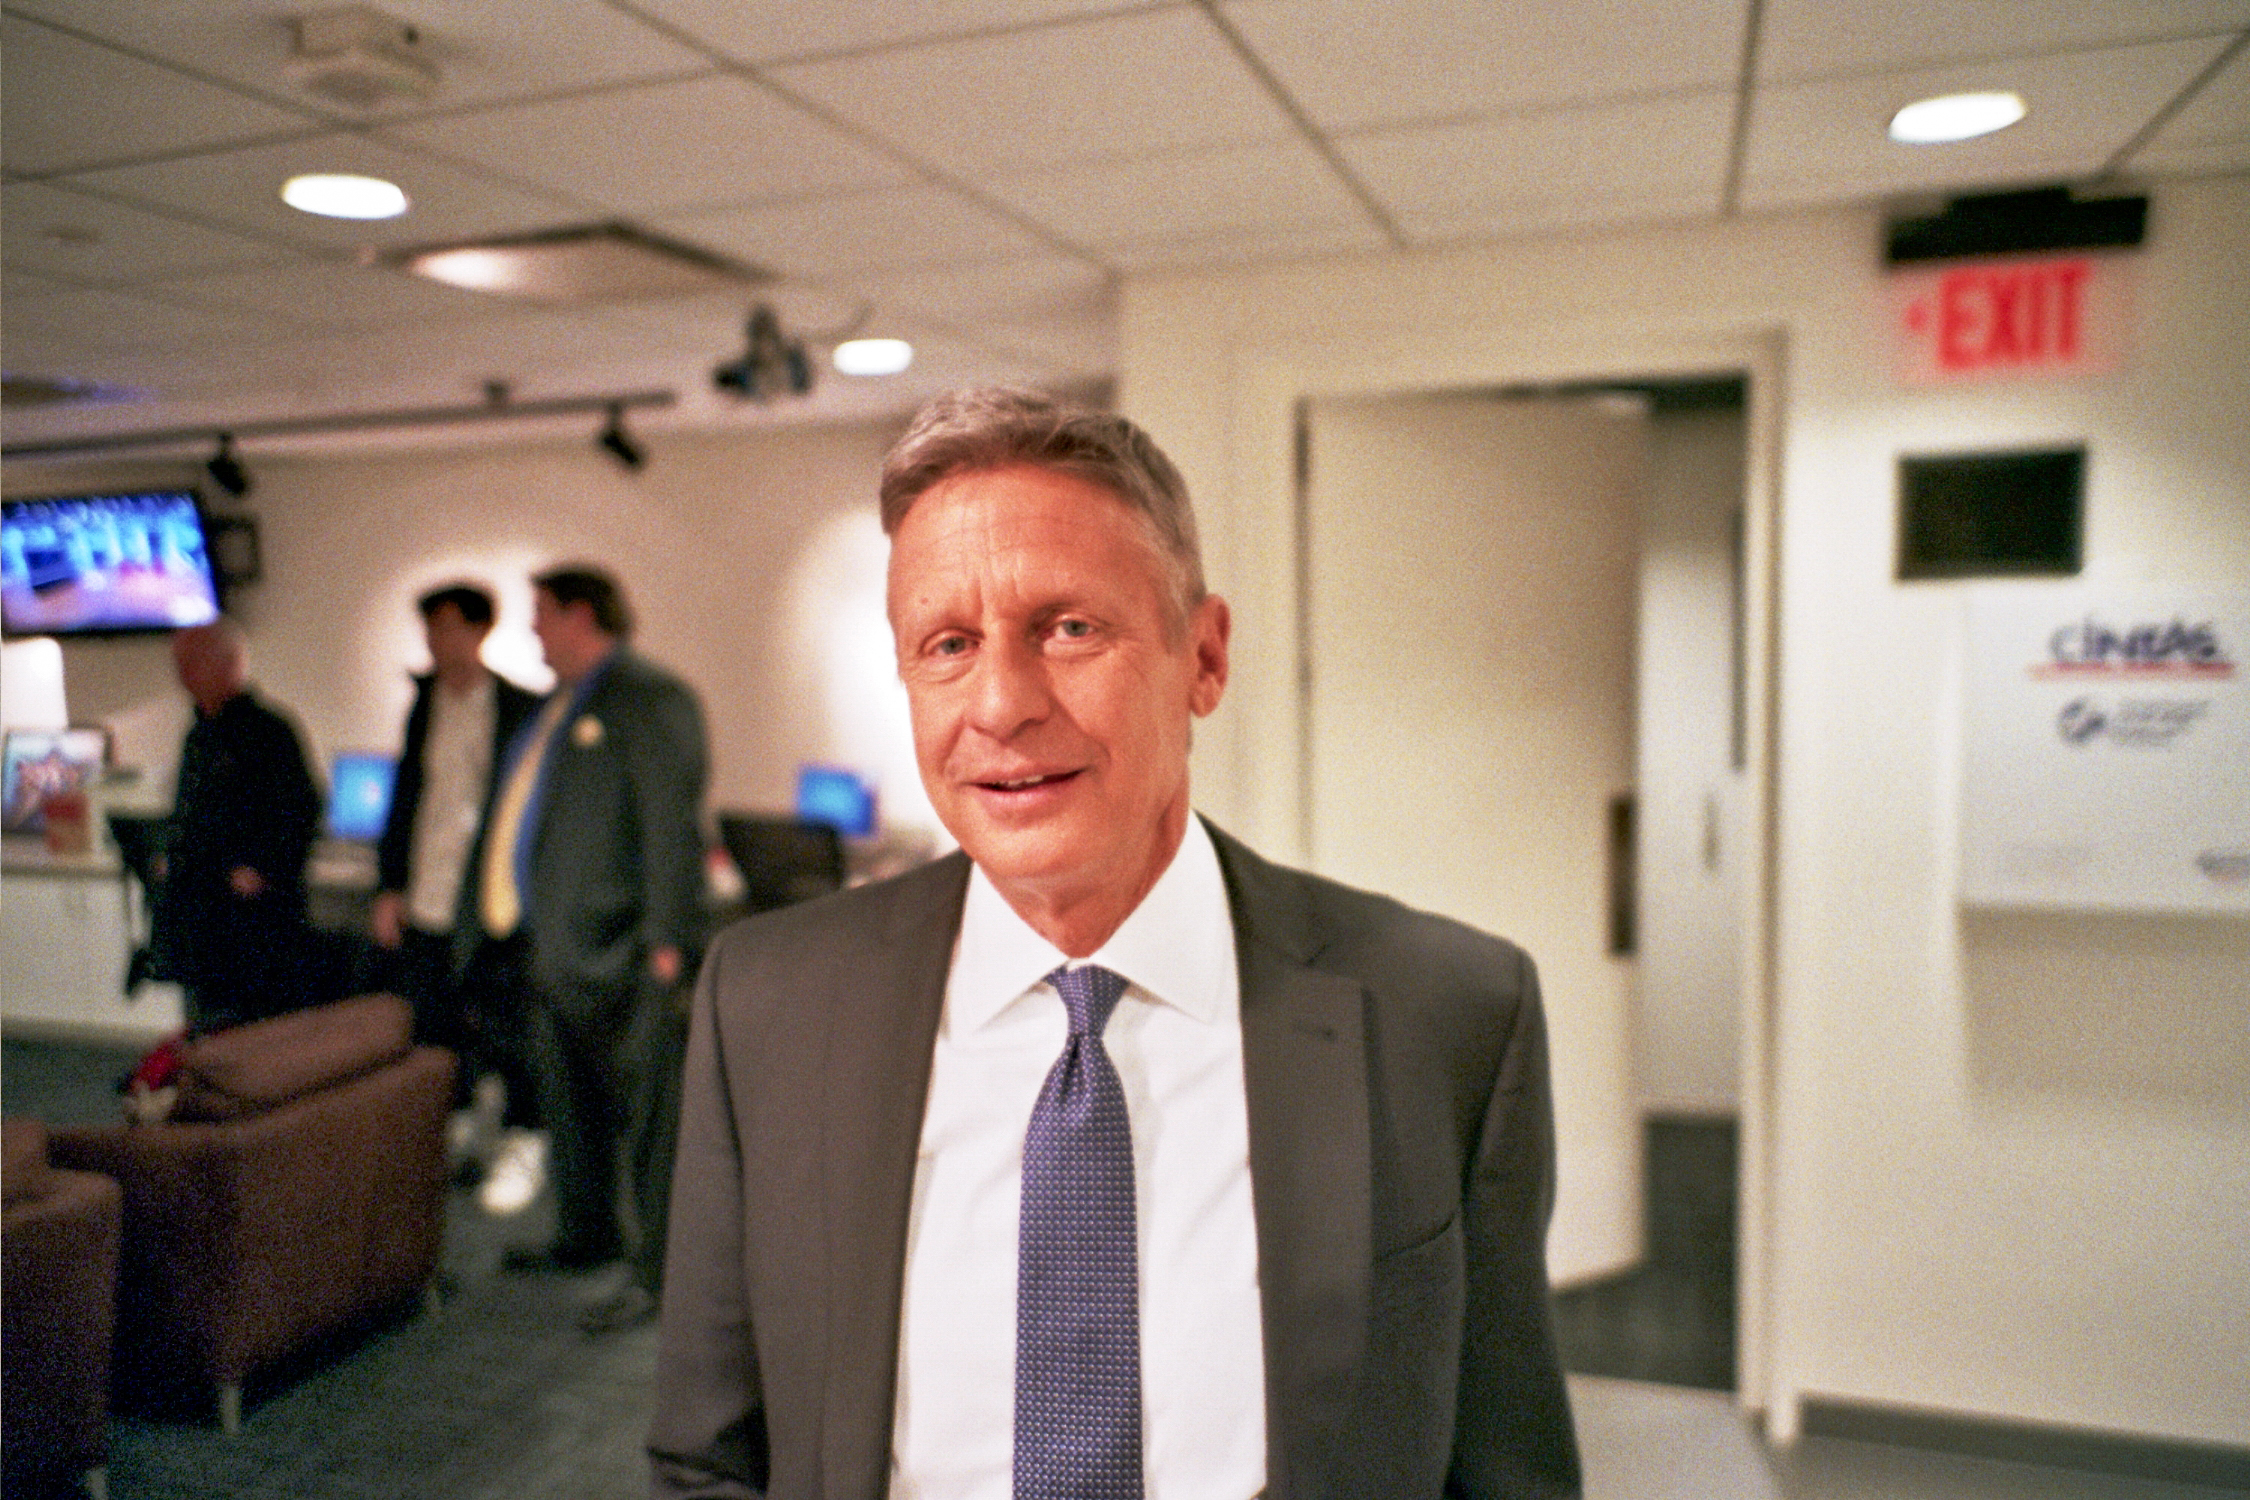 Two-term Governor of New Mexico and 2016 Libertarian candidate for President Gary Johnson